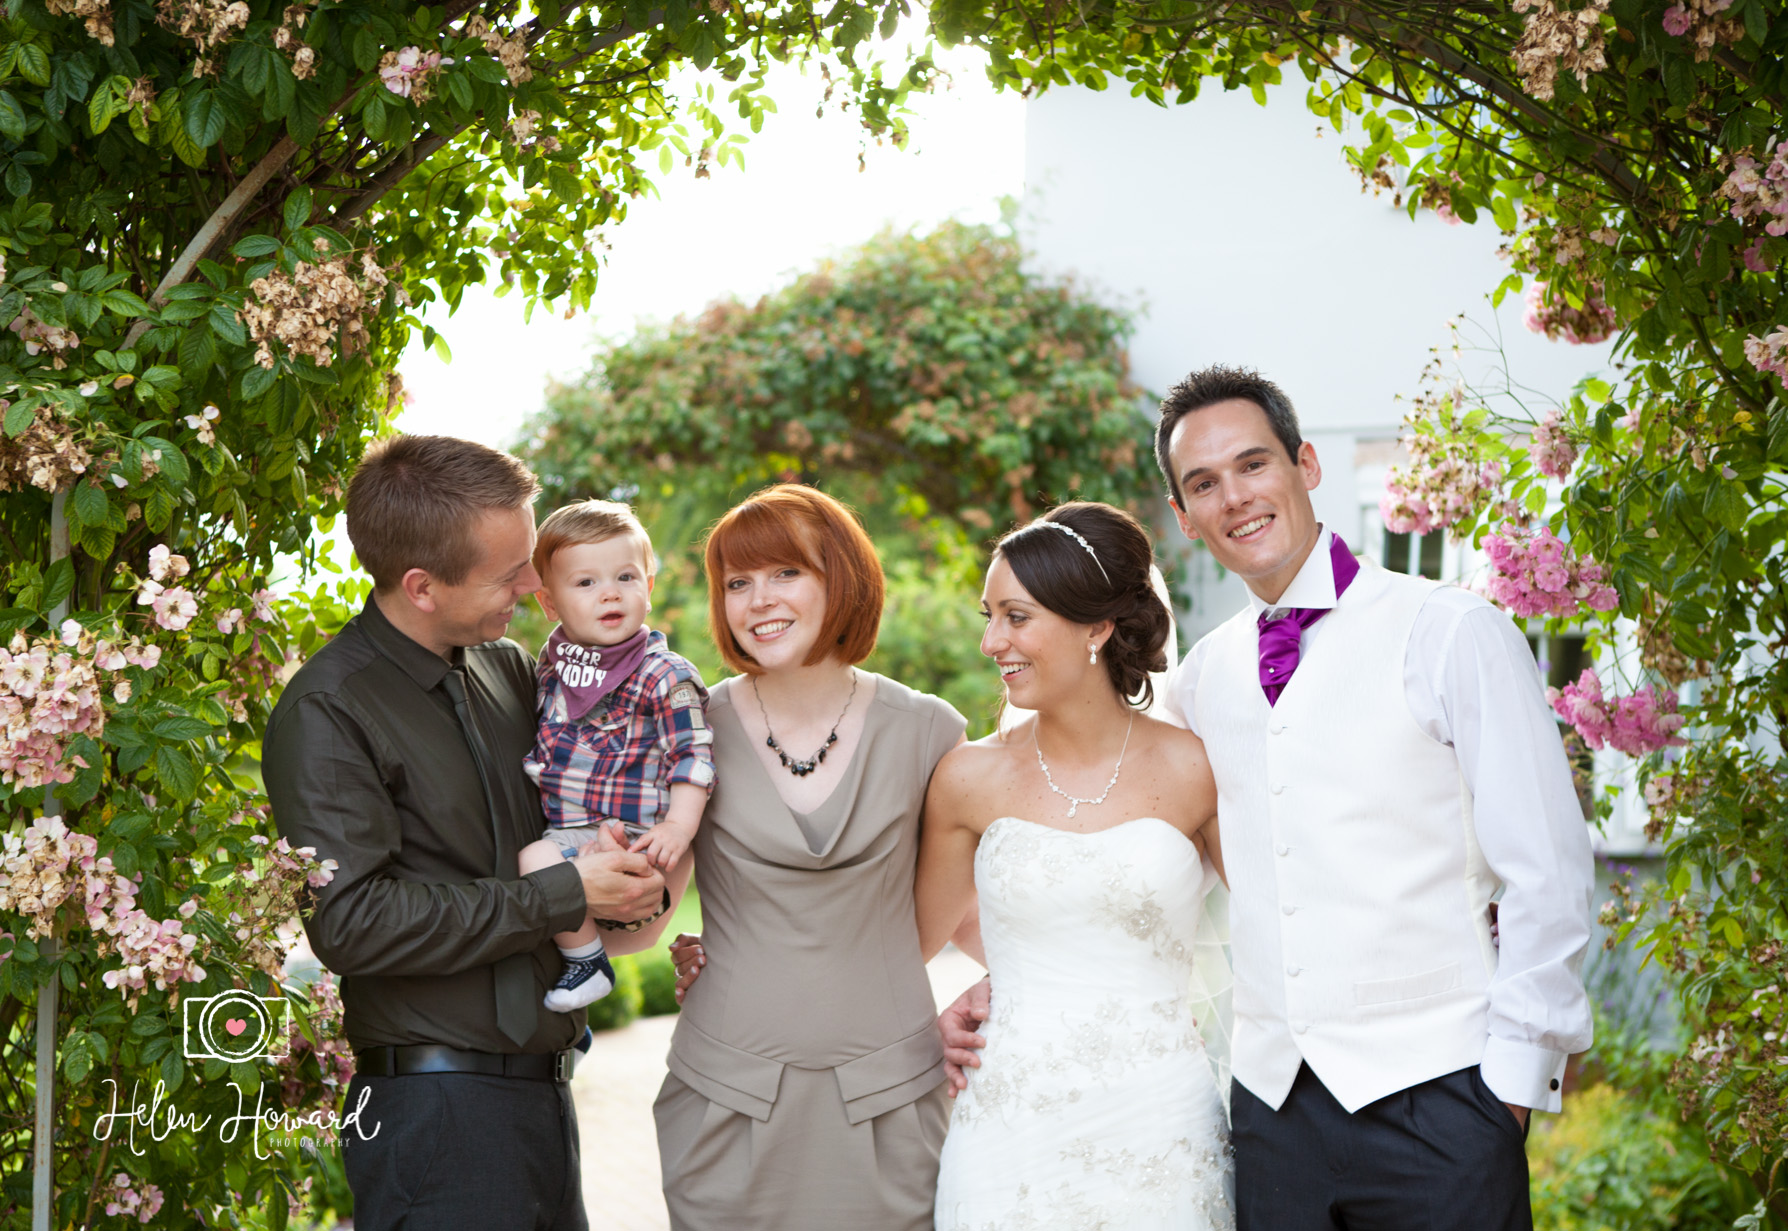 Wedding guests with the bride and Groom at The Old School House in Weeford